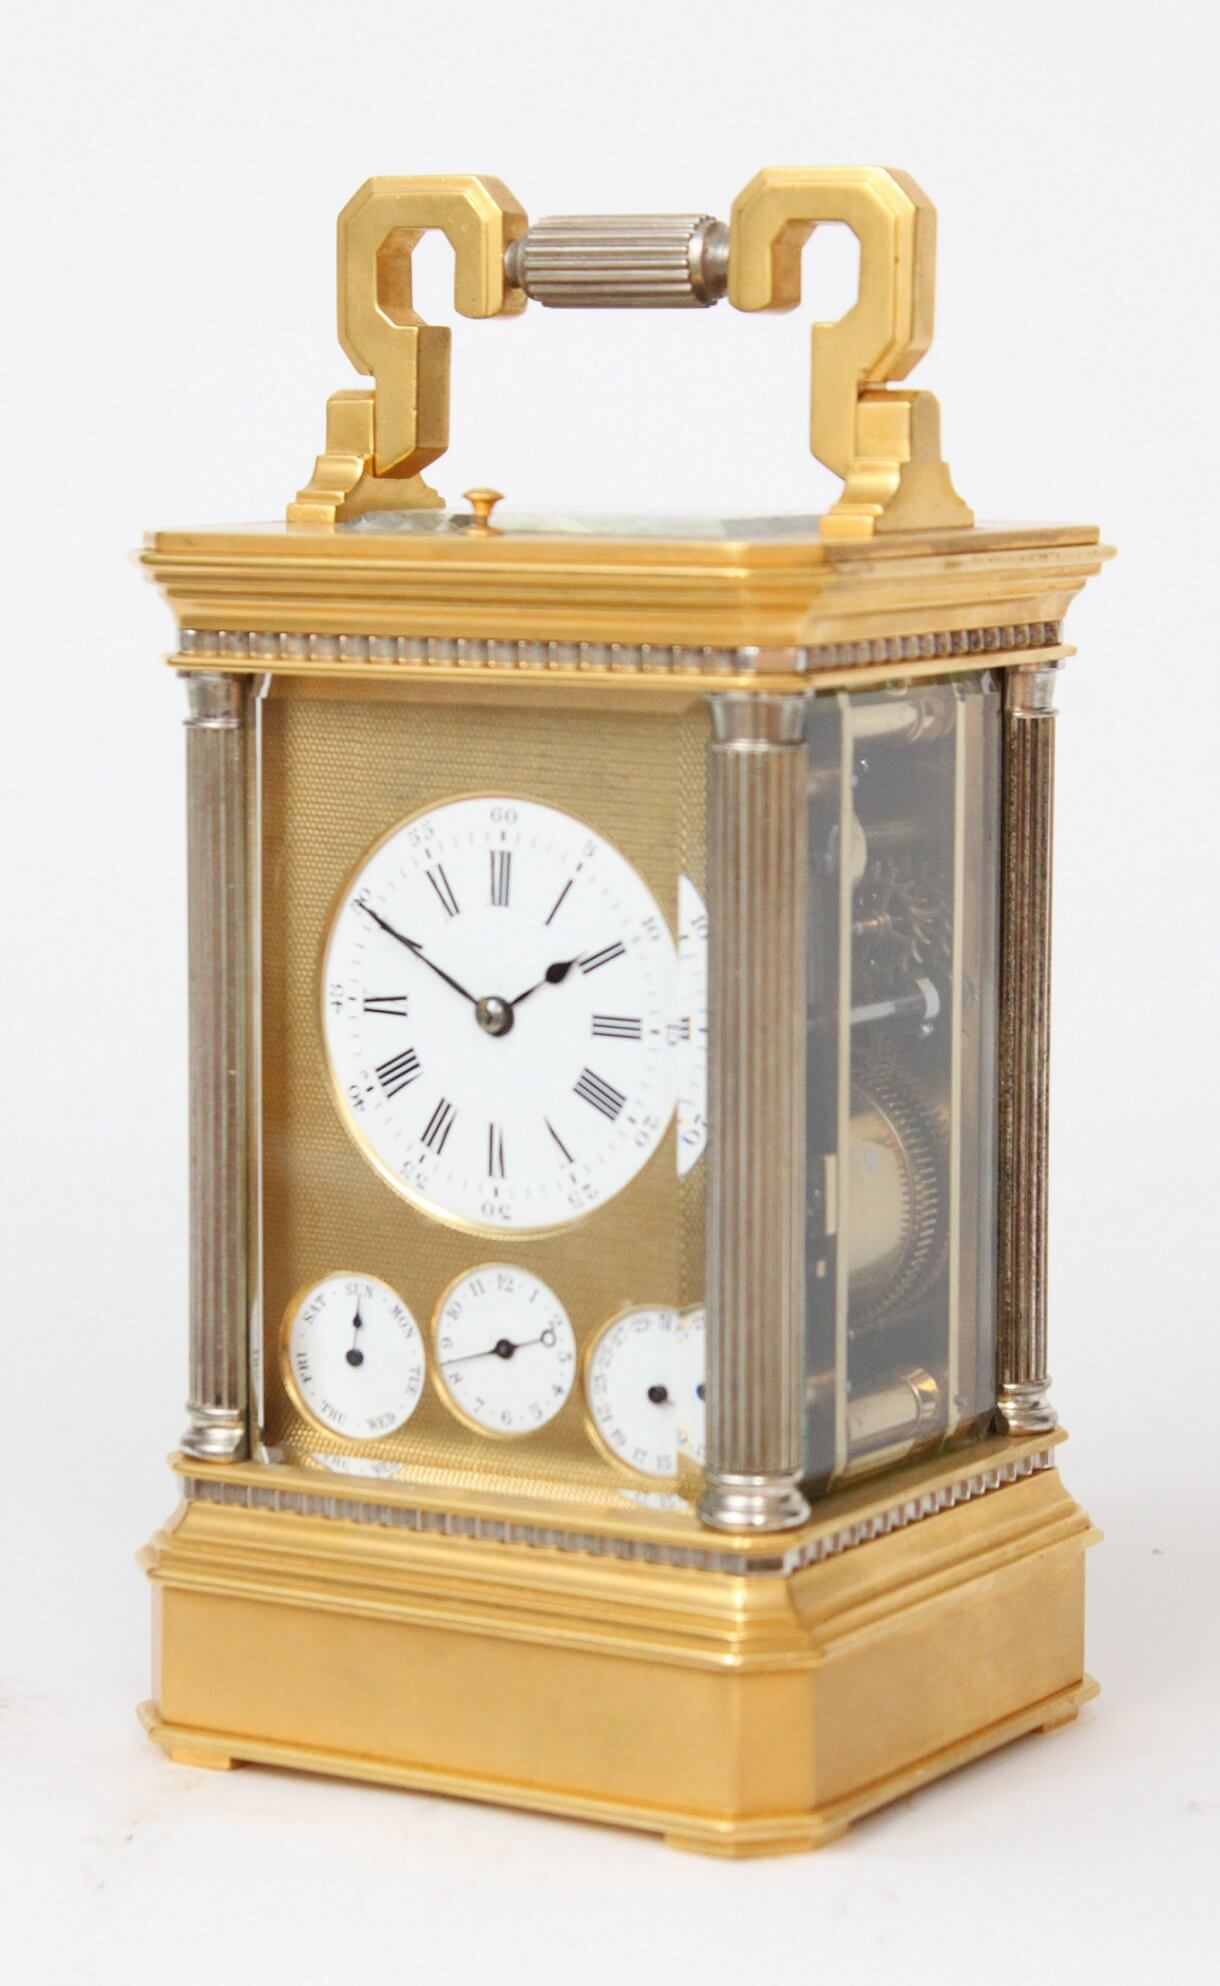 French-gilt-anglaise-silvered-striking-repeating-day-date-alarm-calendar-antique-carriage-clock-